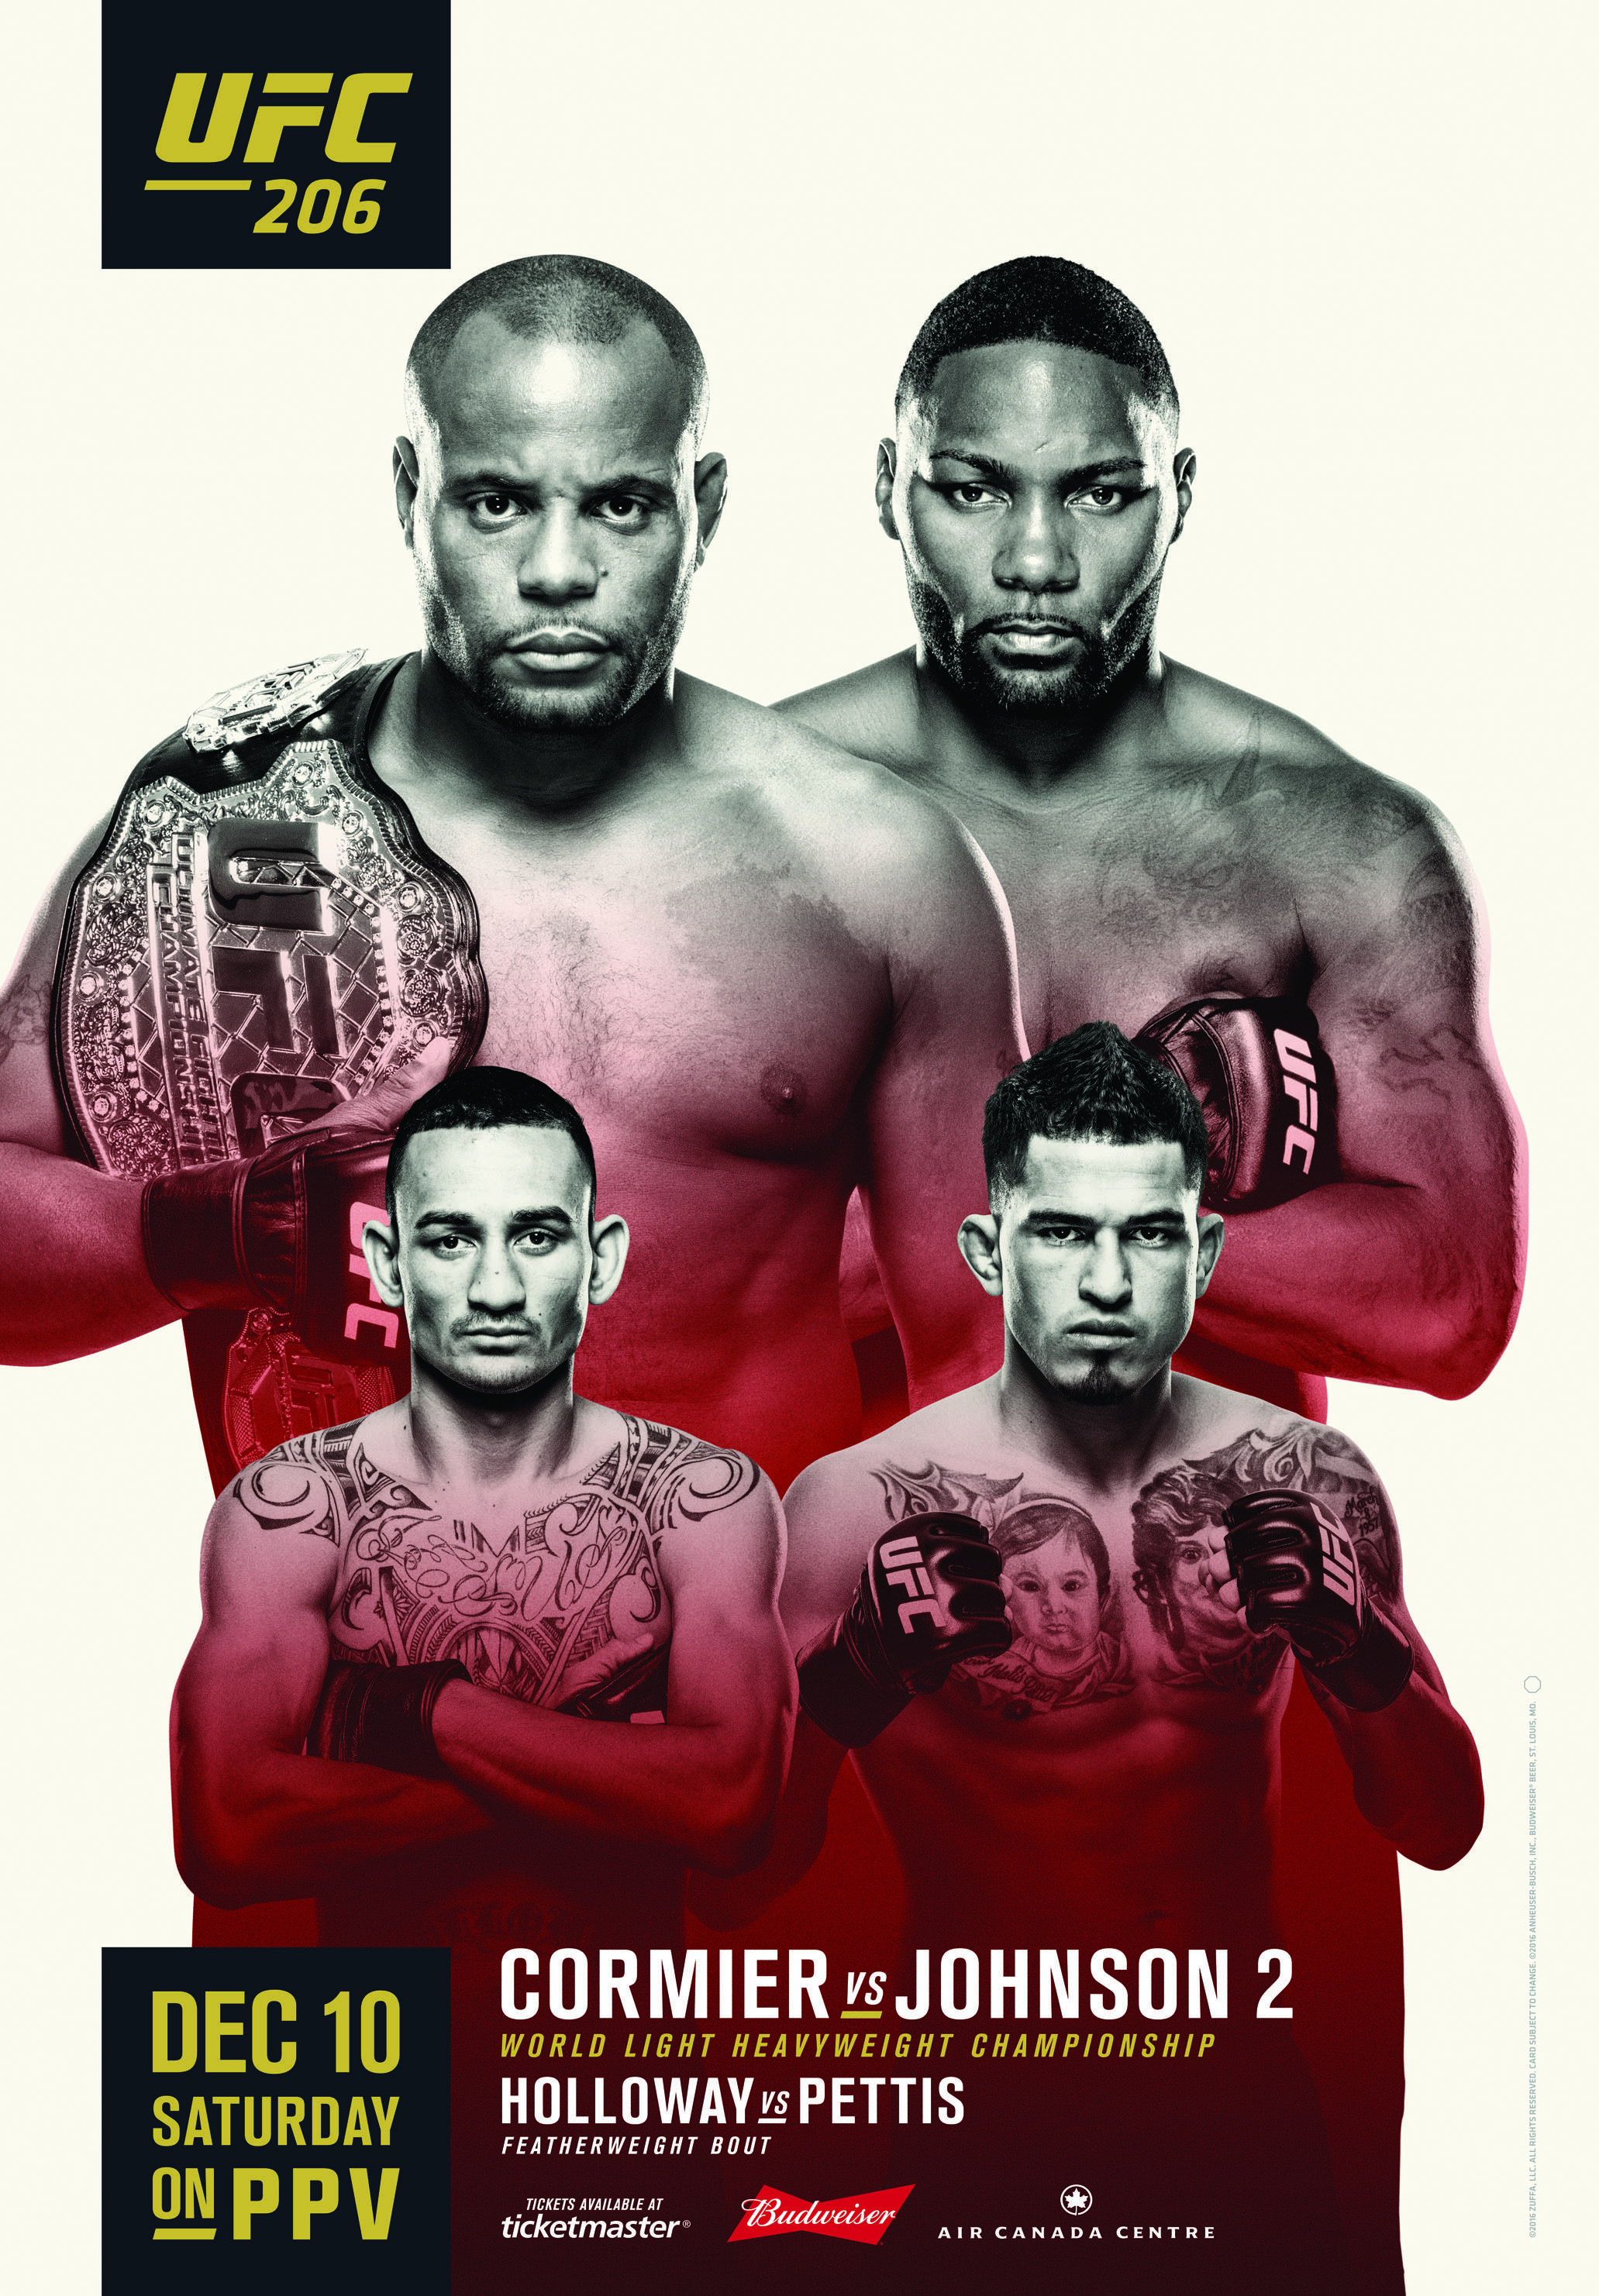 The Official Ufc 206 Poster Is Here Mma Fans You Ready For This Fight Ufc Poster Mma